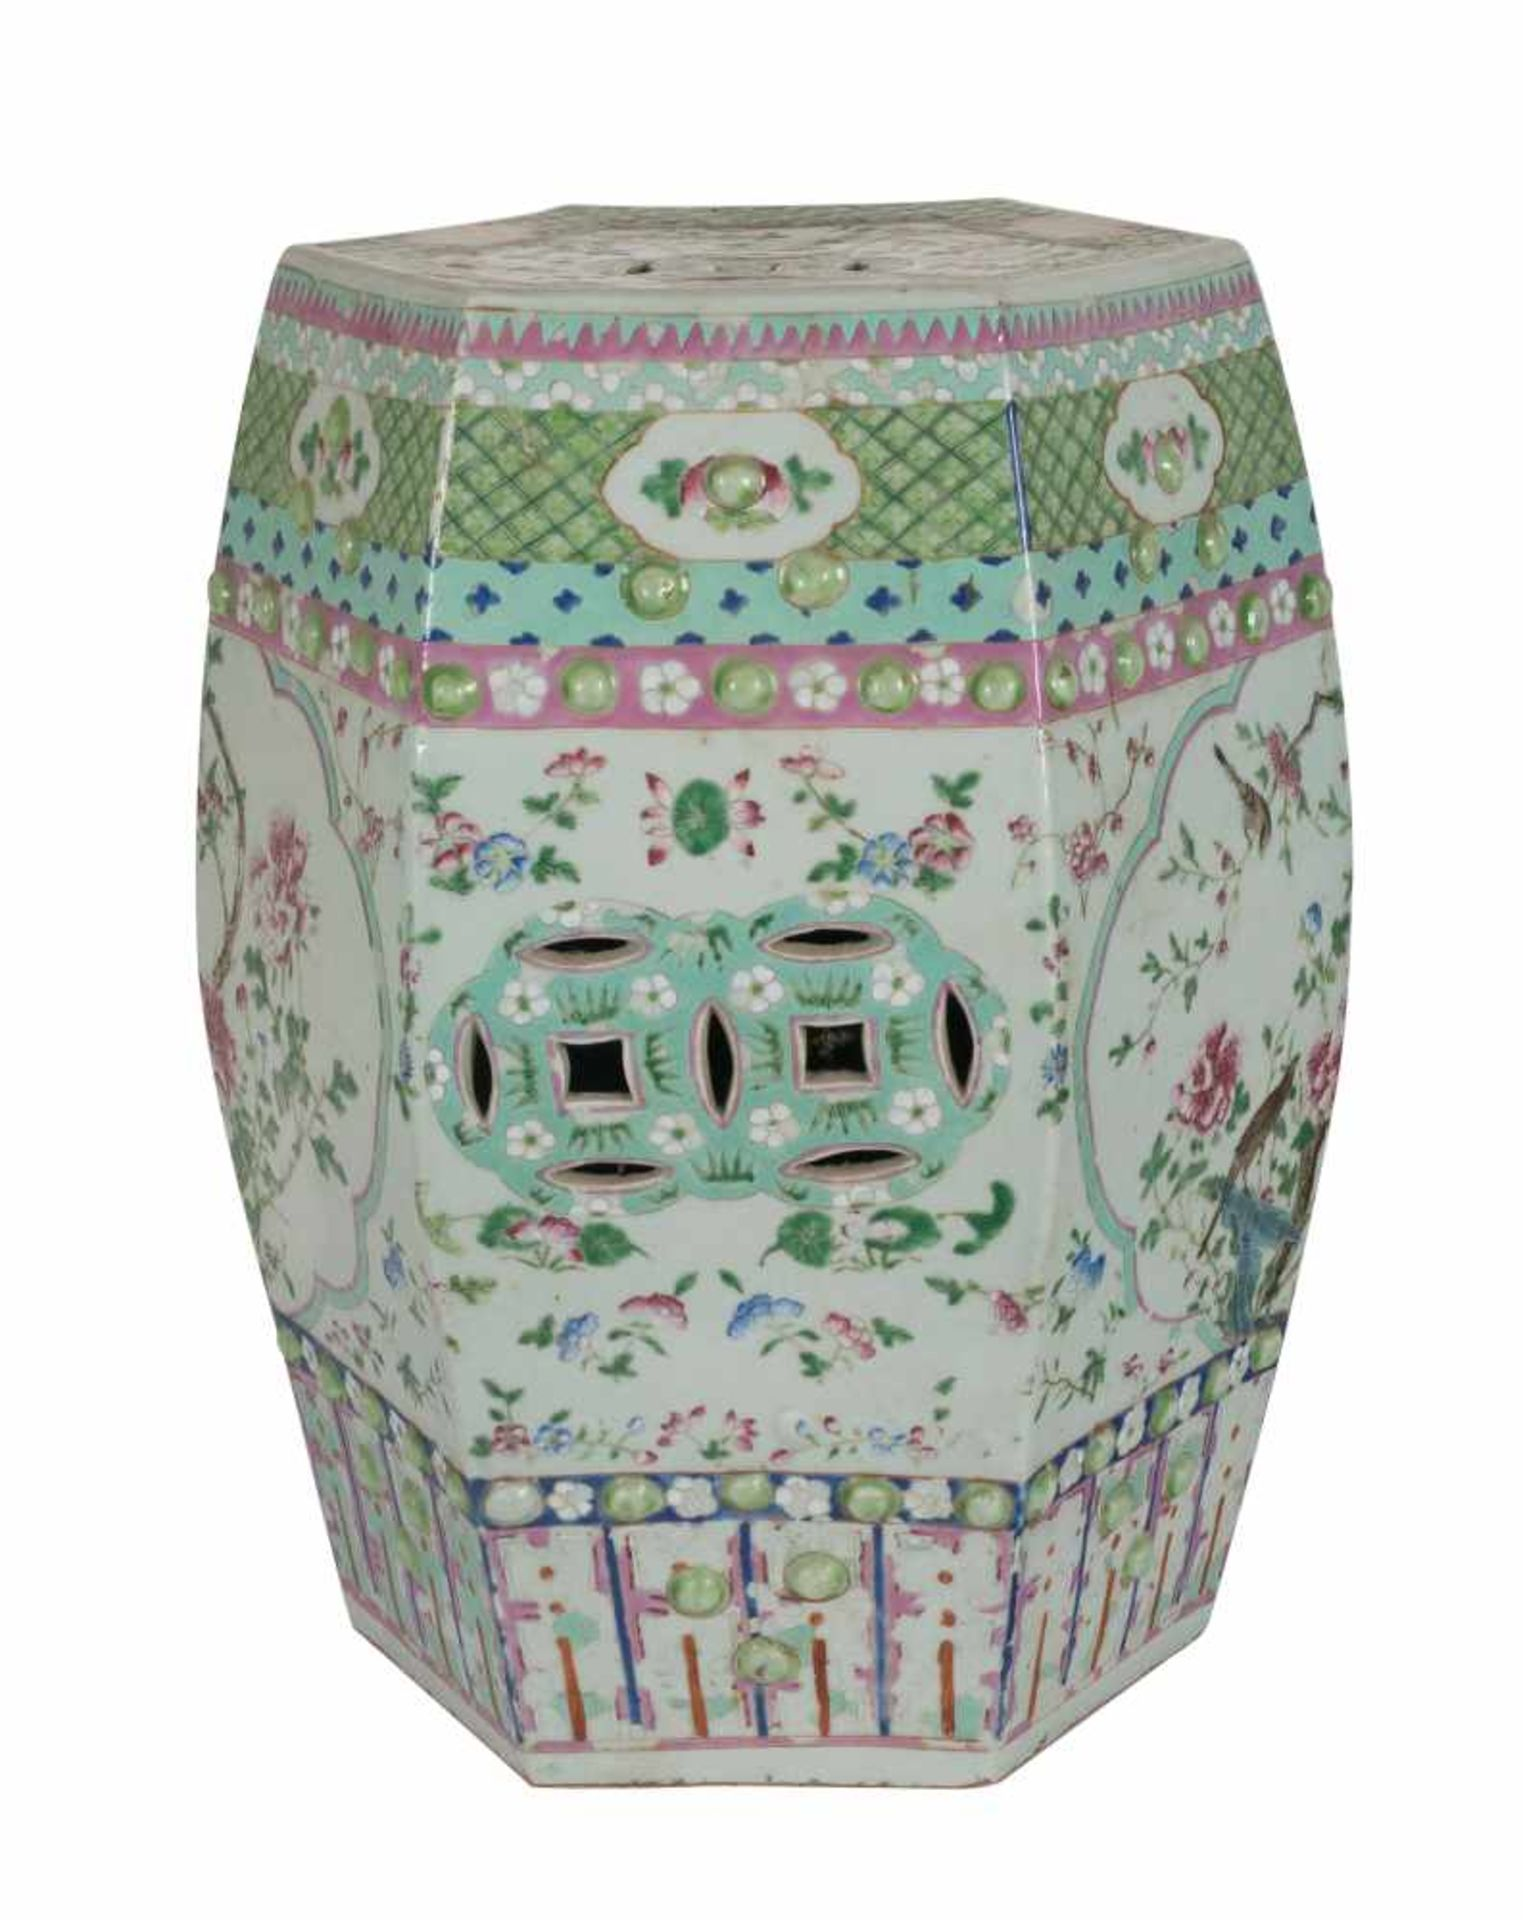 Los 5 - Export porcelain octagonal garden seat. China. Rosa family. Qing dynasty. 19th century.46 x 30